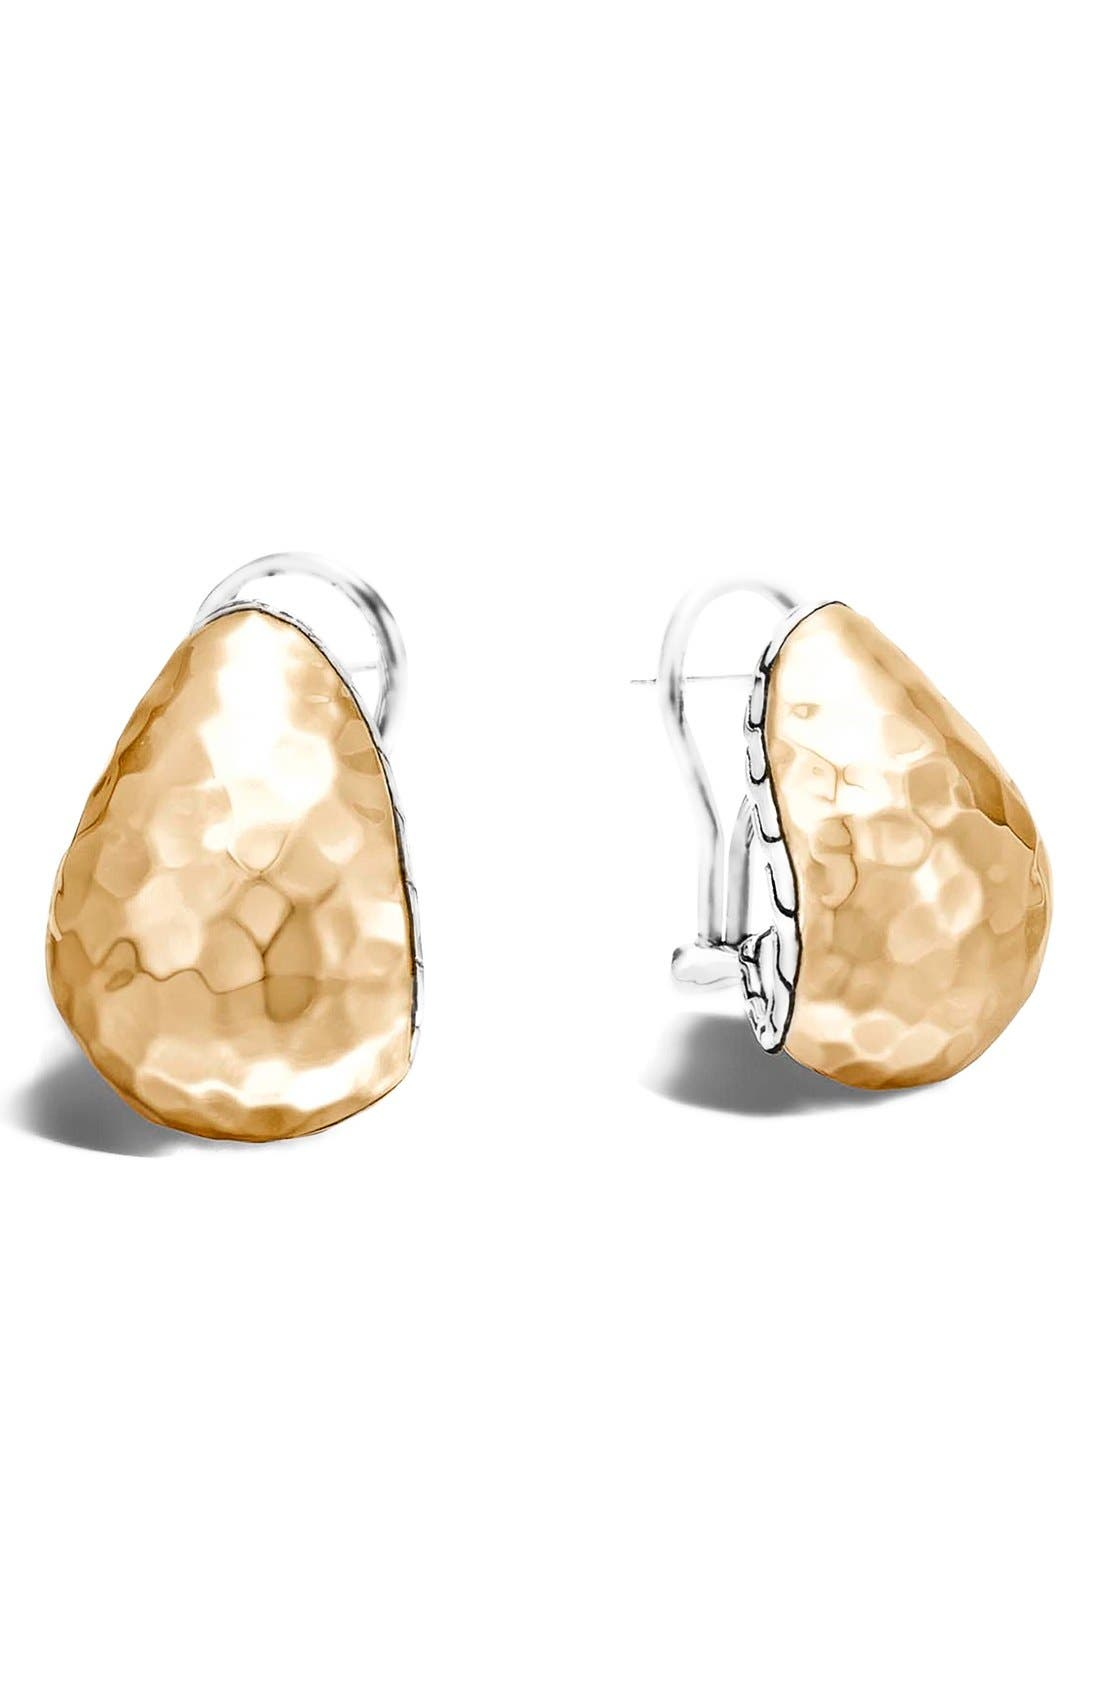 'Classic Chain - Buddha Belly' Stud Earrings,                         Main,                         color, Silver/ Gold